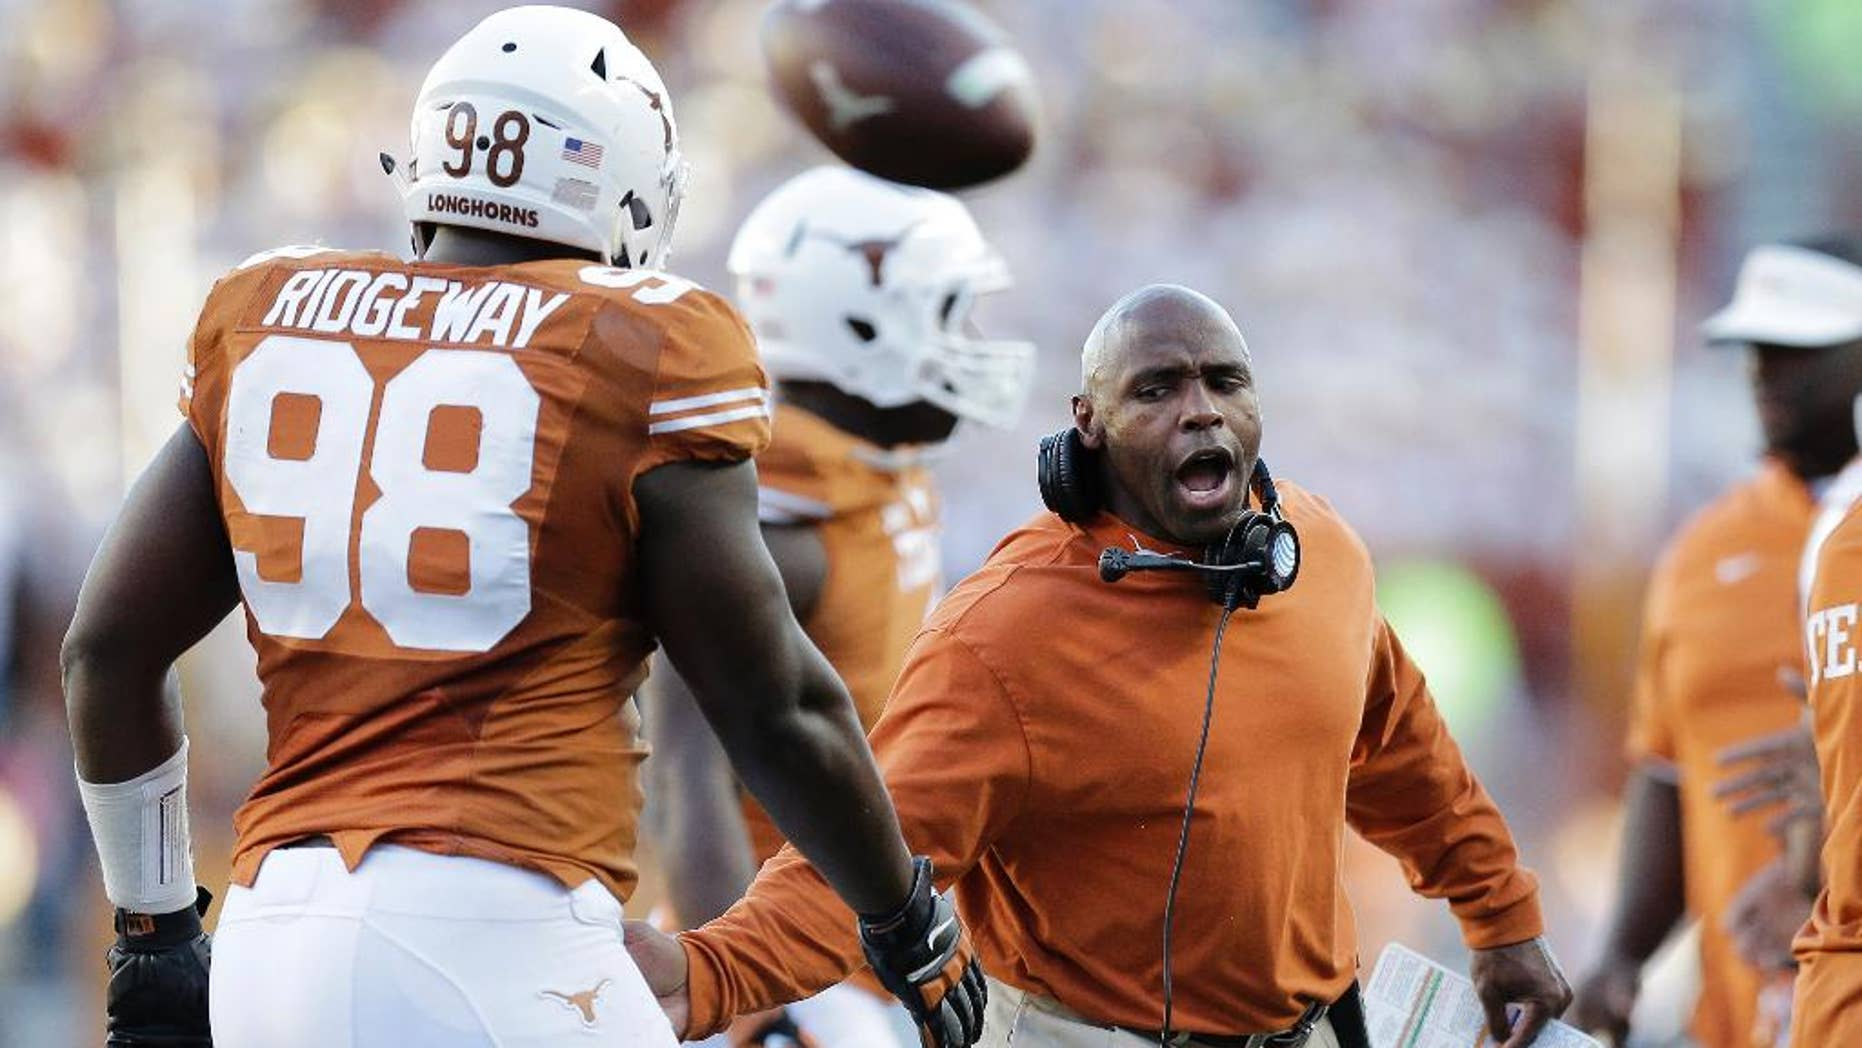 FILE - In this Nov. 8, 2014, file photo, Texas Longhorns head coach Charlie Strong, right, congratulates players as they walk off the field during the second half of an NCAA college football game against West Virginia in Austin, Texas. BOUND- Texas is bowl bound. That seemed such an unlikely scenario for first-year coach Charlie Strong when the Longhorns got shut out a month ago and were sinking fast. (AP Photo/Eric Gay, File)